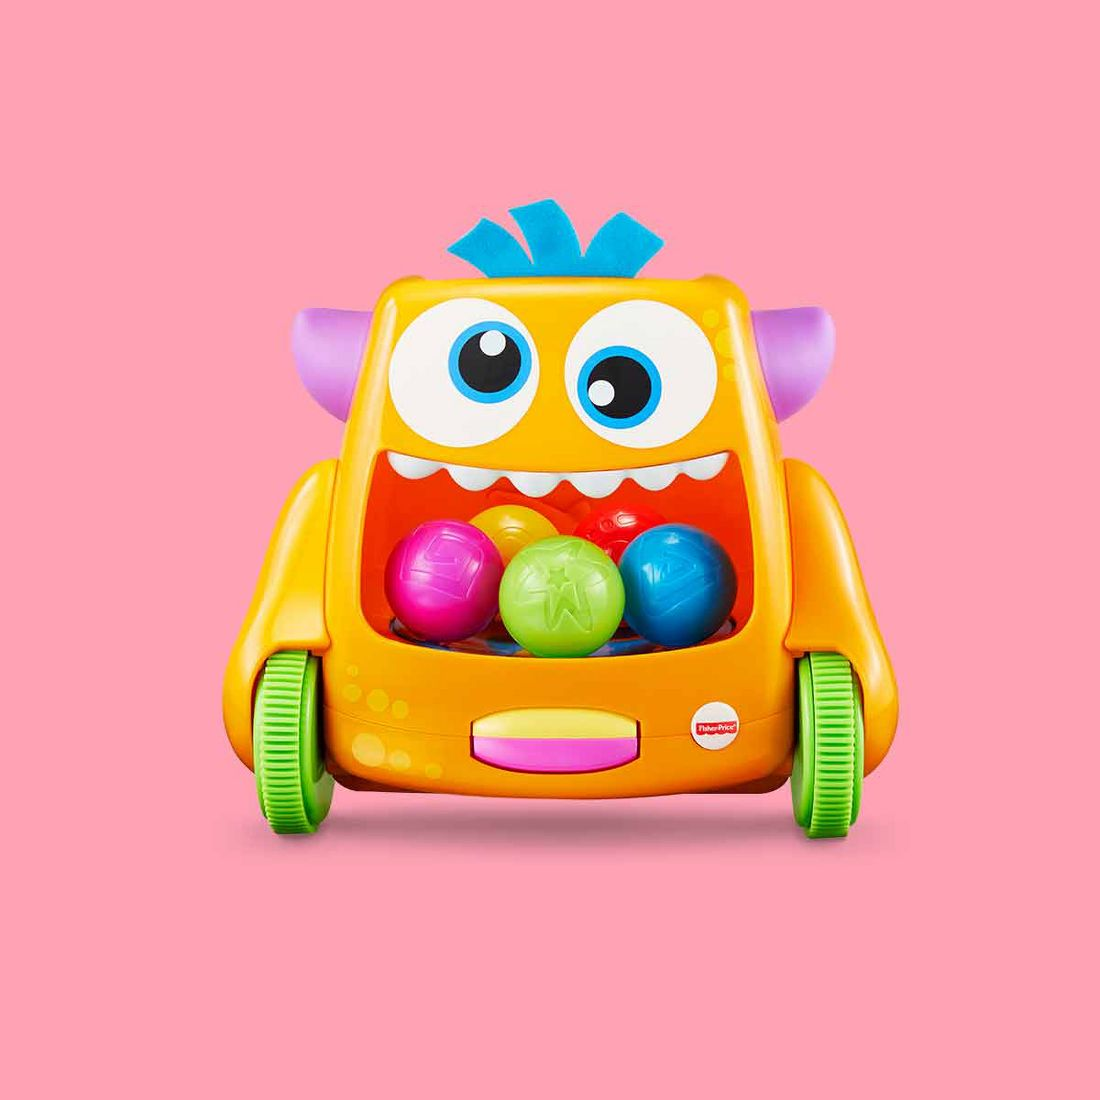 Toddler Toys Target Cuddle Me Pajamas Red The Angry Birds Movie Zoom N Crawl Monster